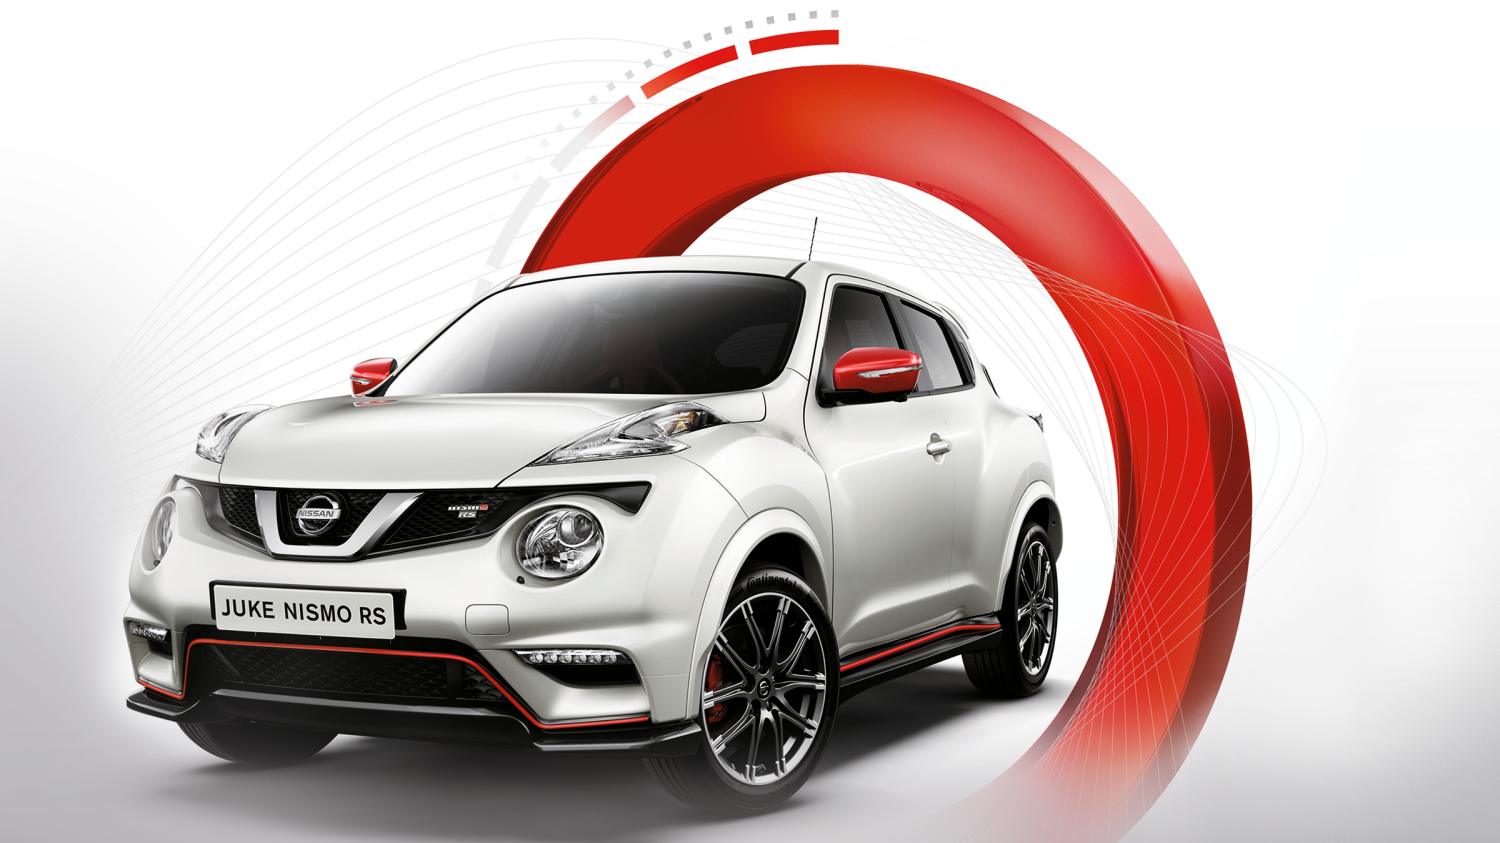 Nissan Juke NISMO RS - front view